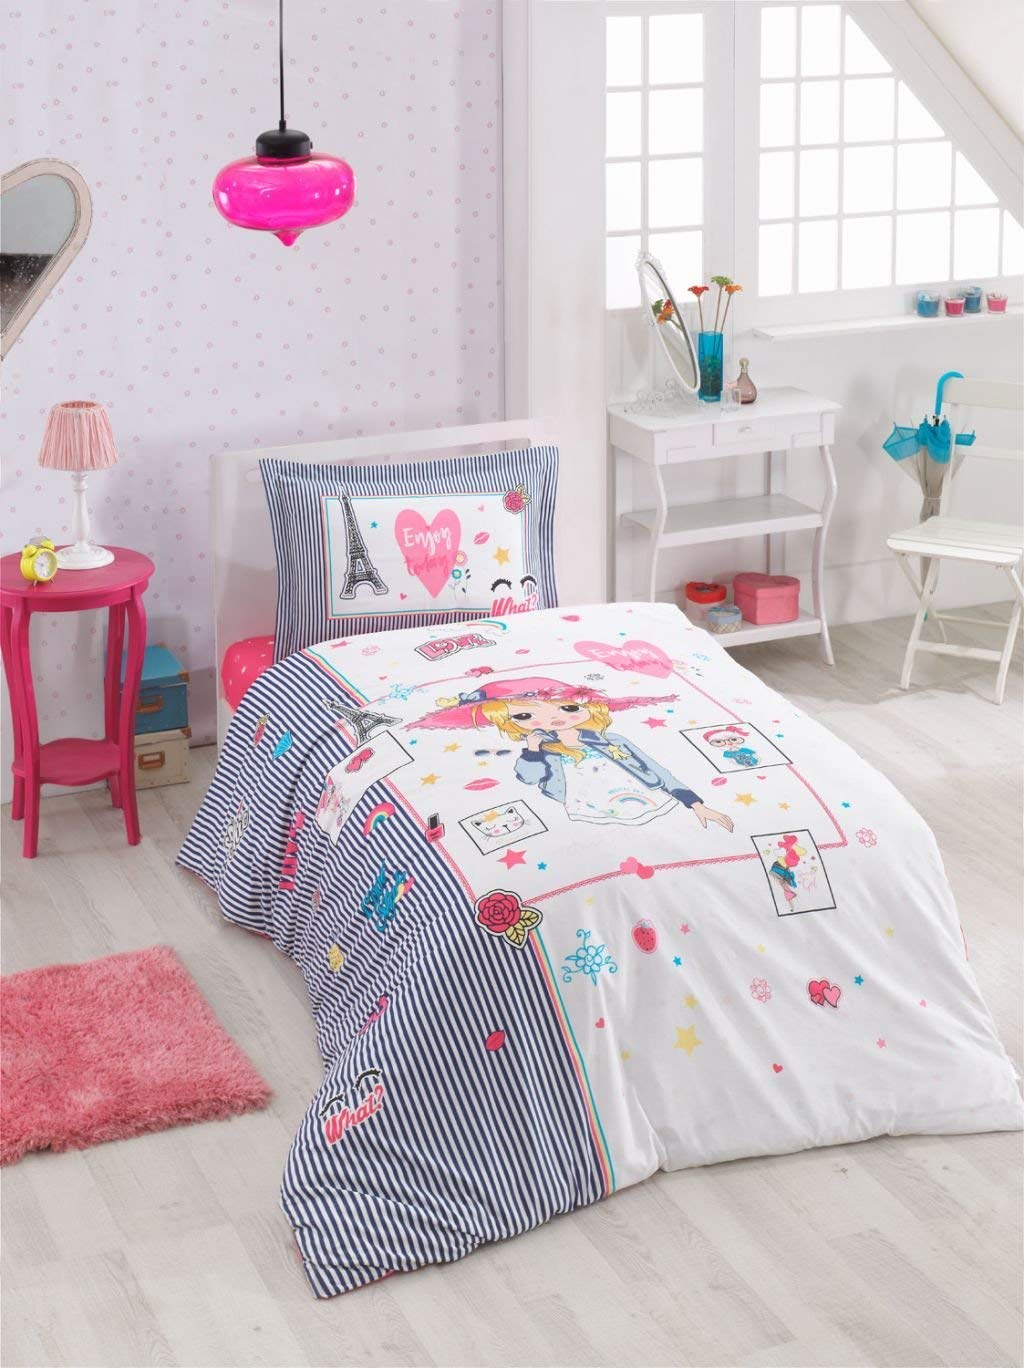 Astrea Textiles Girls Kids Pink Duvet Cover Sets Single Twin Size Bed Quilt Cover Set - 100% Cotton - Multi Colour Printed 3 Pieces With Fitted Sheet For Girls